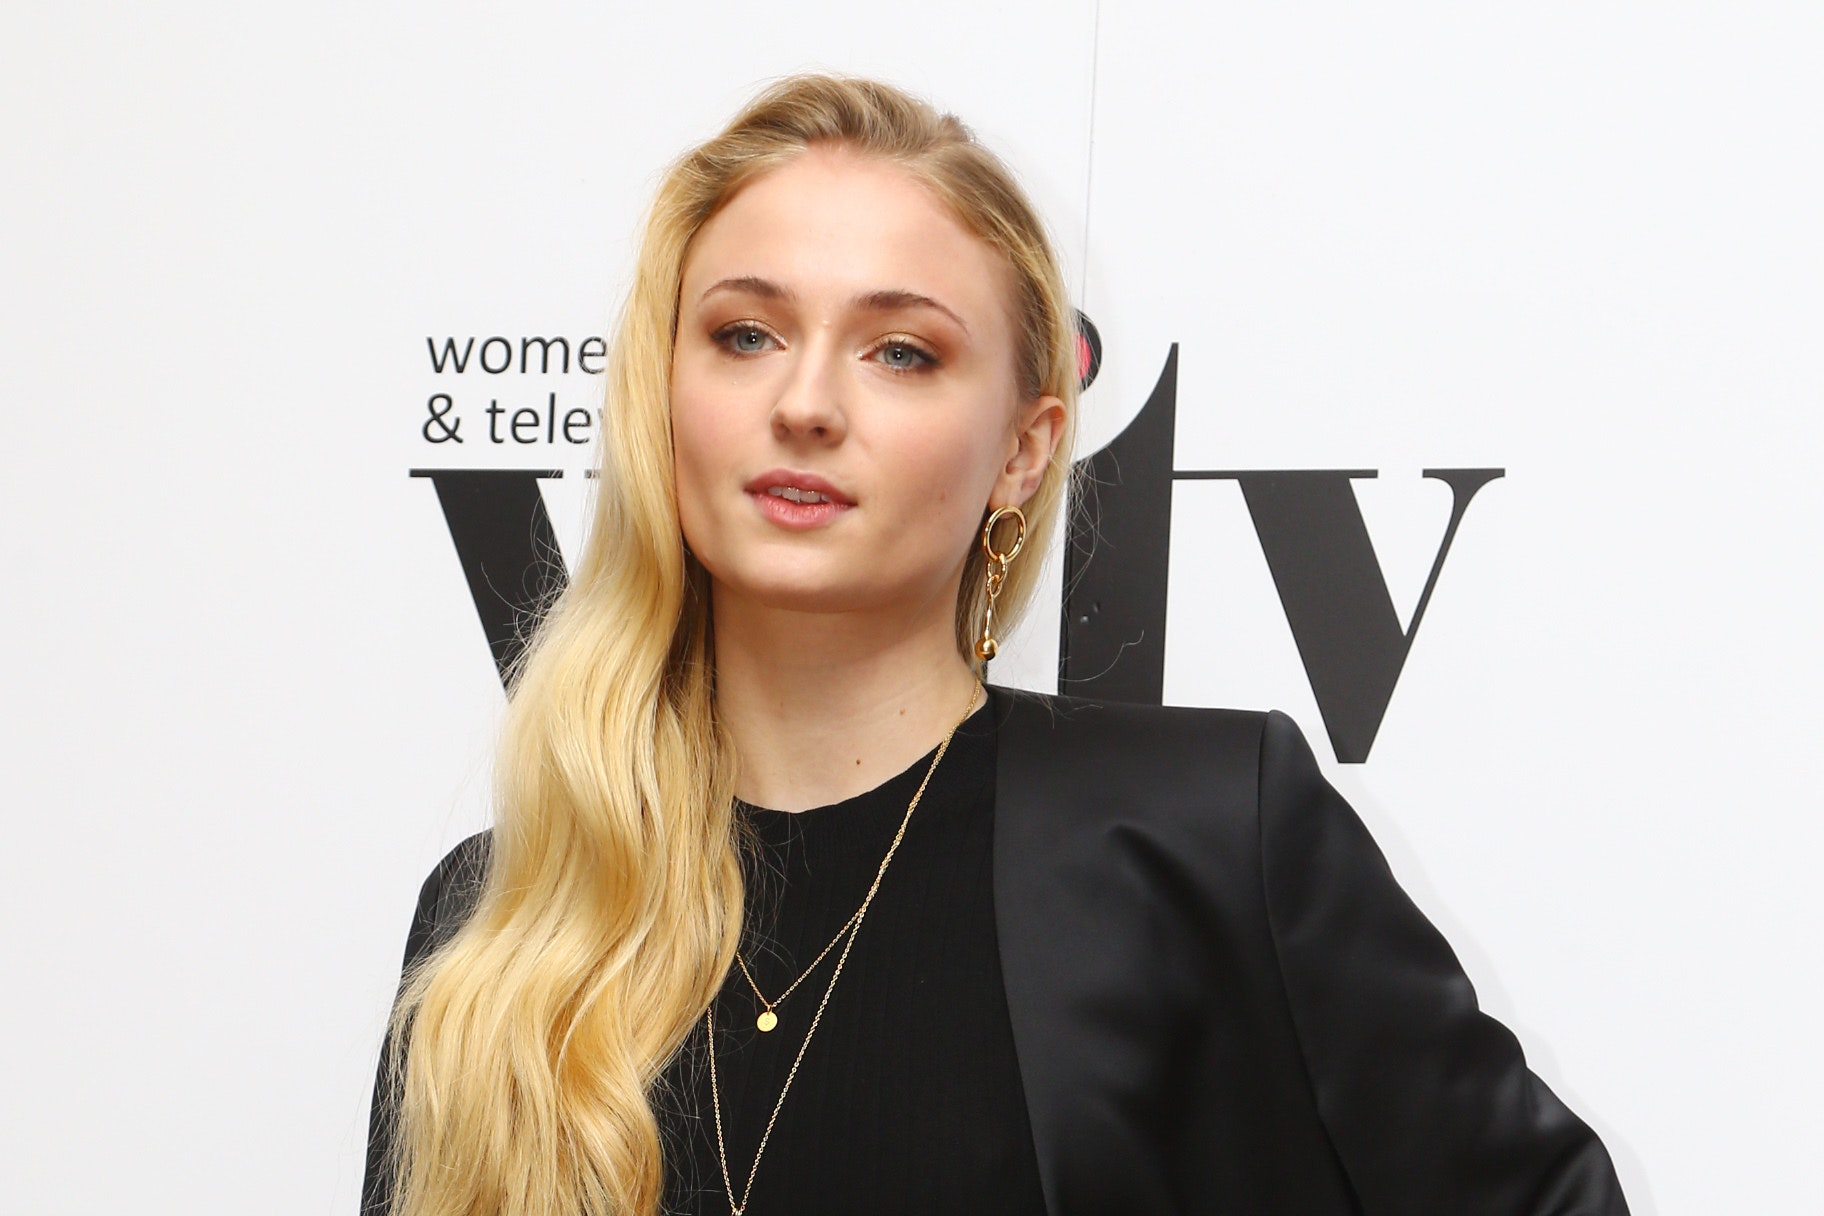 Sophie Turner shuts down Piers Morgan over mental health tweets